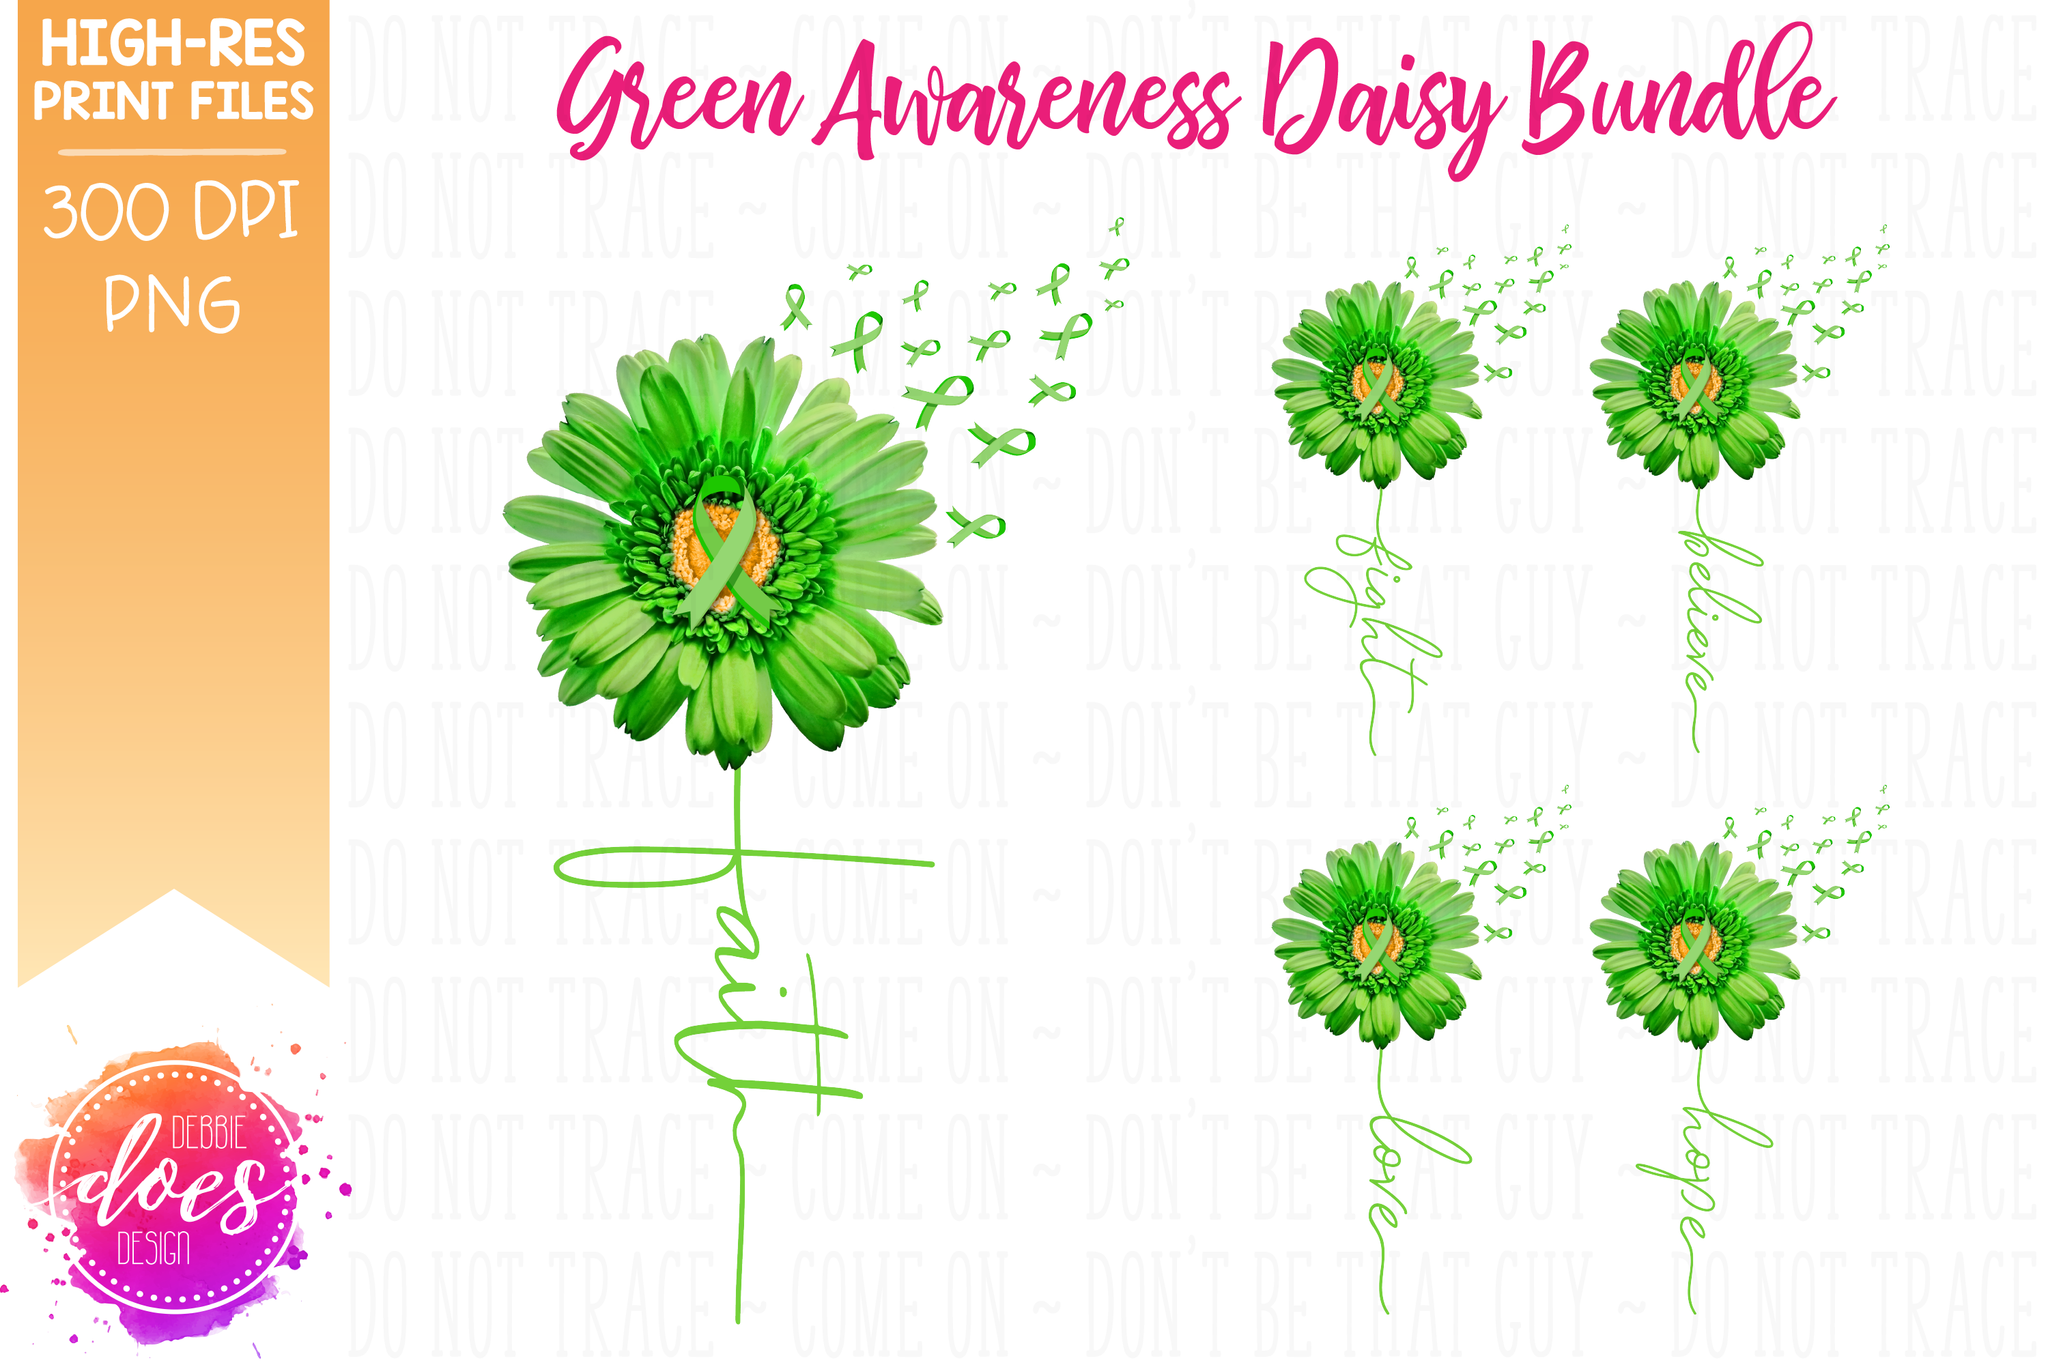 Green Awareness Daisy Bundle - Includes 5 Designs! - Printable/Sublimation File